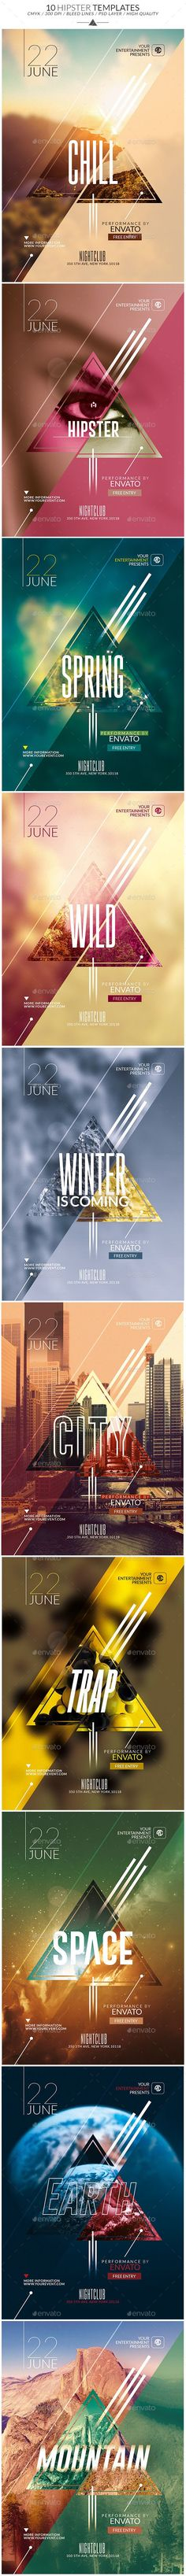 Bundle - 10 Minimal Hipster Party Flyers Template, Clean, Very easy to Edit and Creative Design perfect to promote your Event ! Web Design, Layout Design, Flyer Design, Creative Design, Design Art, Print Design, Creative Flyers, Design Ideas, Design Trends